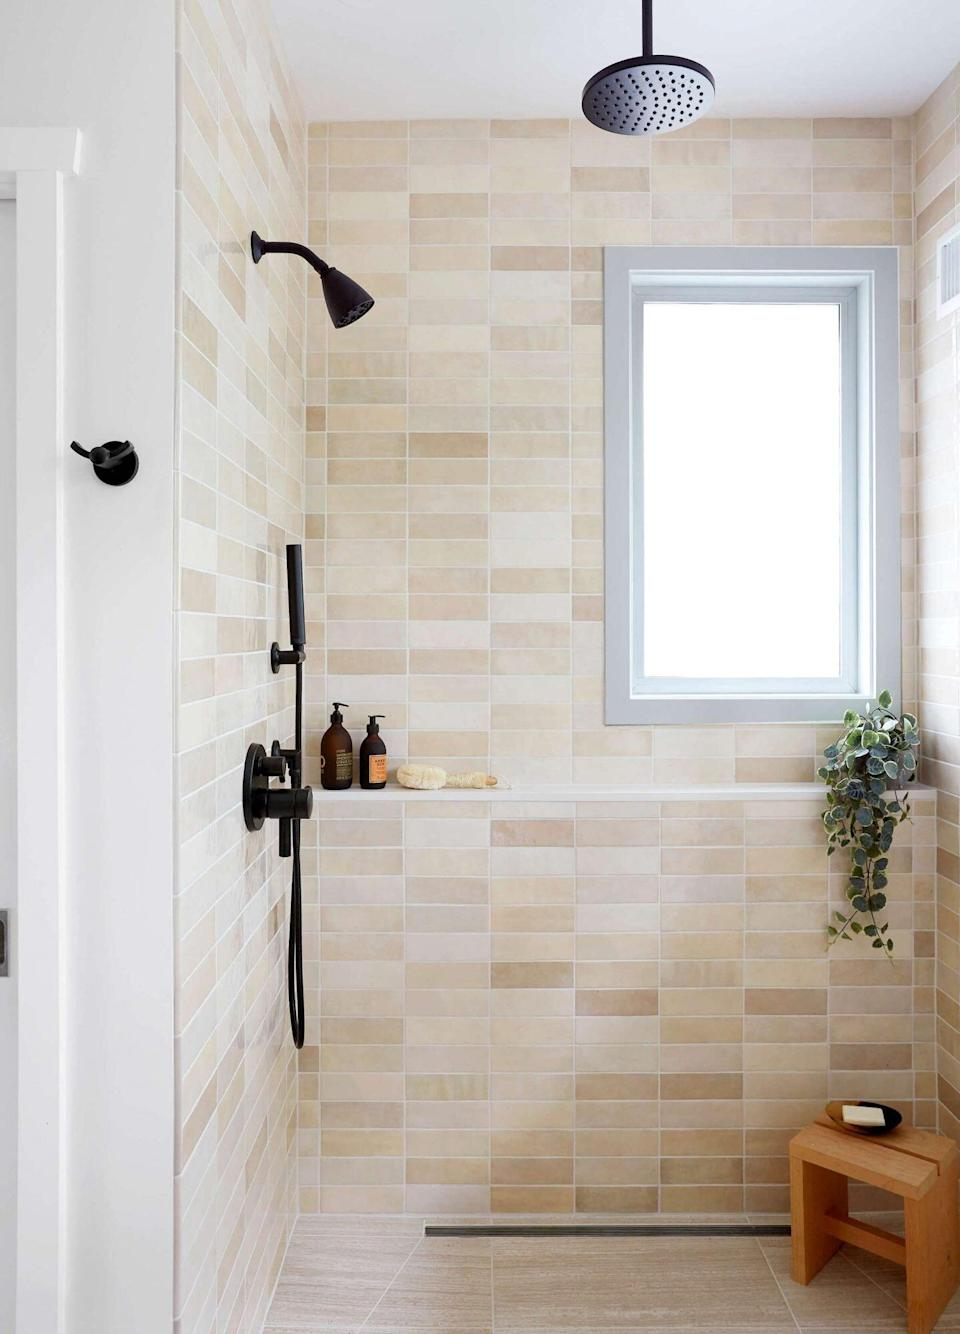 Space of the Week, Tiled Shower